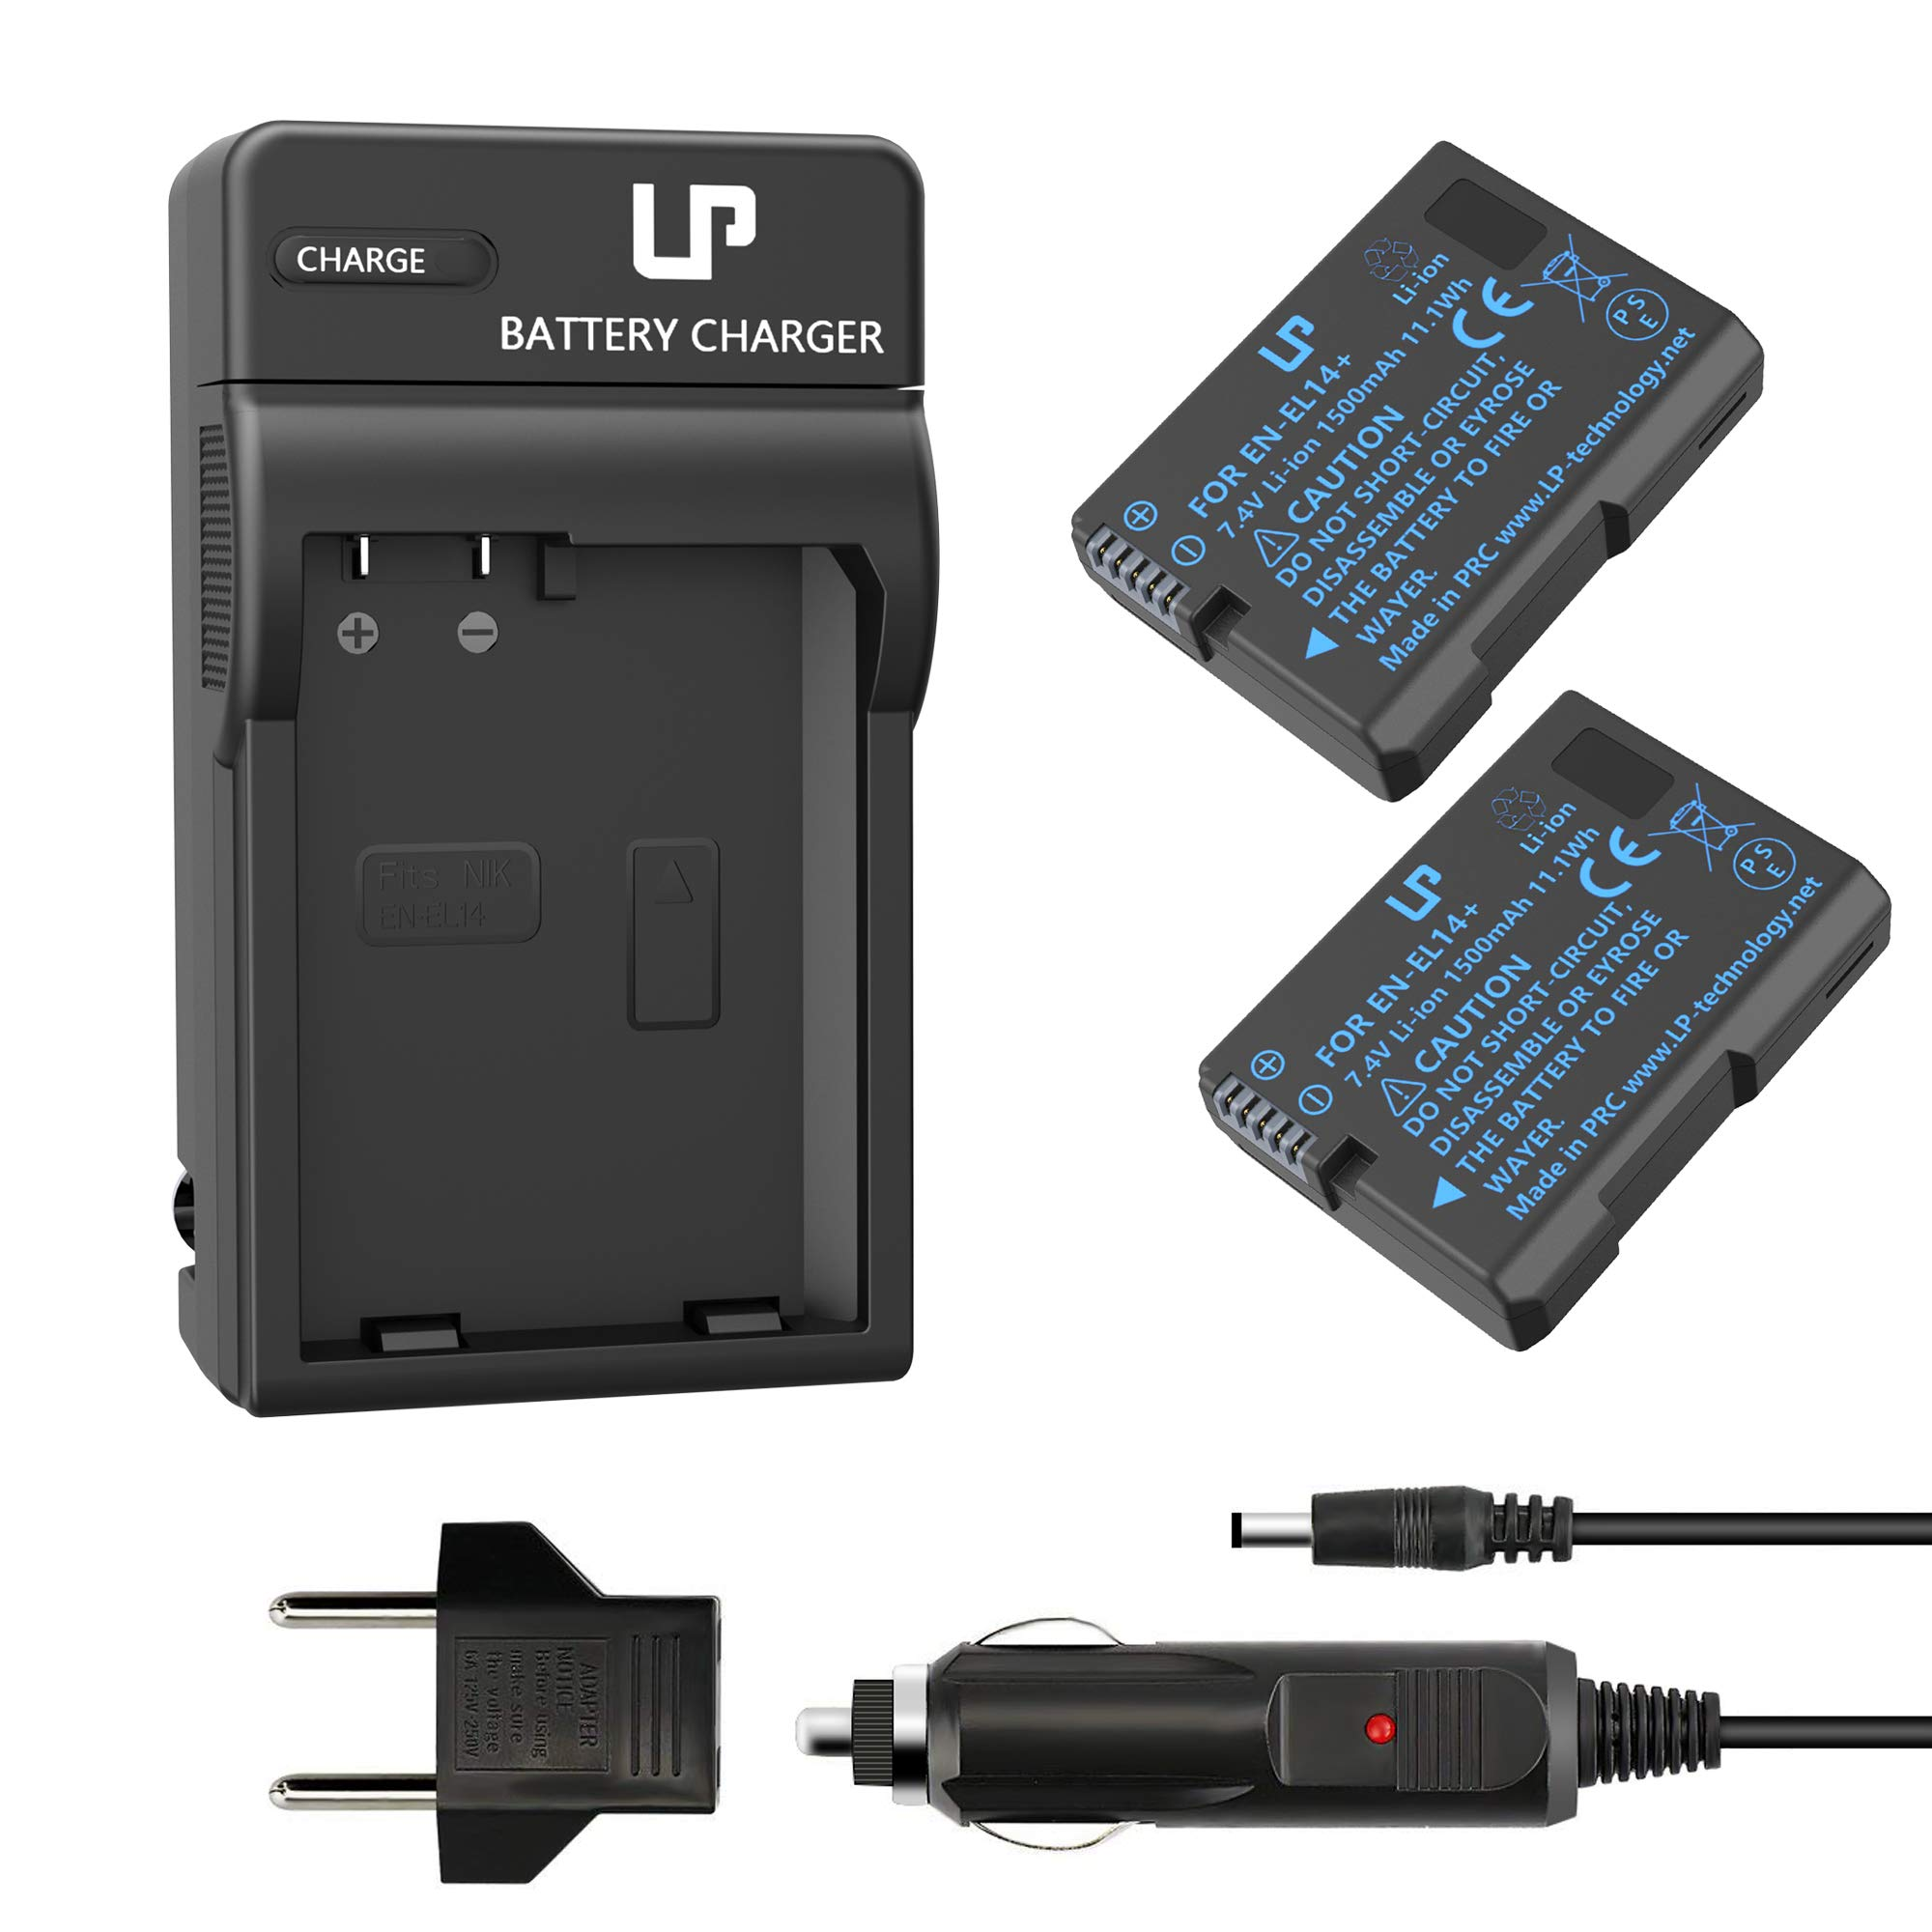 LP EN-EL14 EN EL14a Battery Charger Set, 2-Pack Battery & Charger, Compatible with Nikon D3100, D3200, D3300, D3400, D3500, D5100, D5200, DF & More by LP